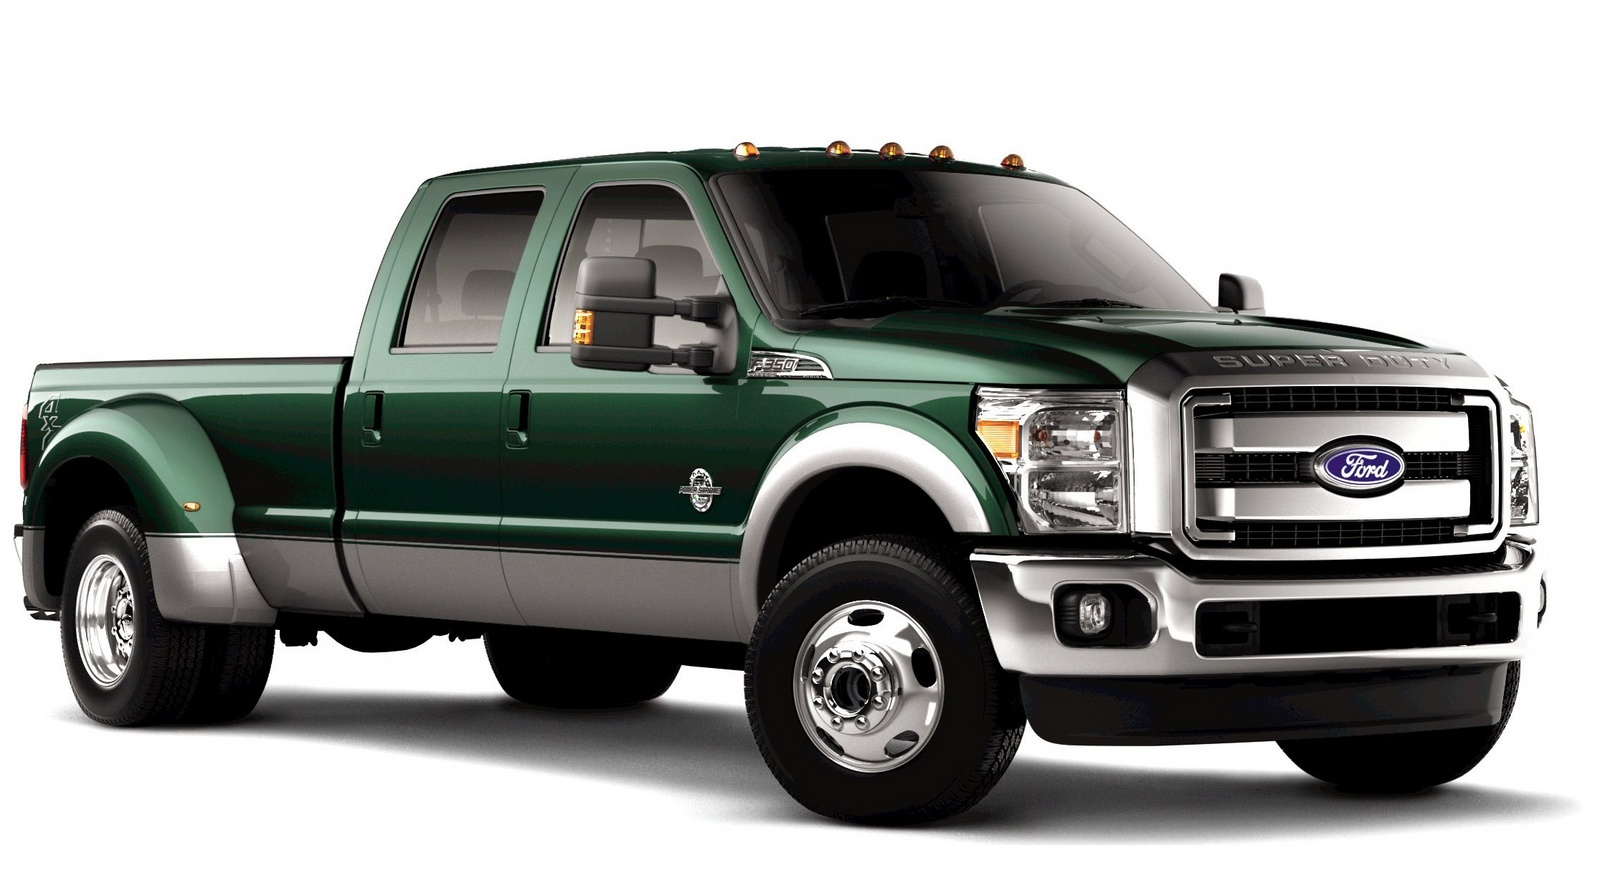 2011 ford f 350 super duty pictures cargurus. Black Bedroom Furniture Sets. Home Design Ideas